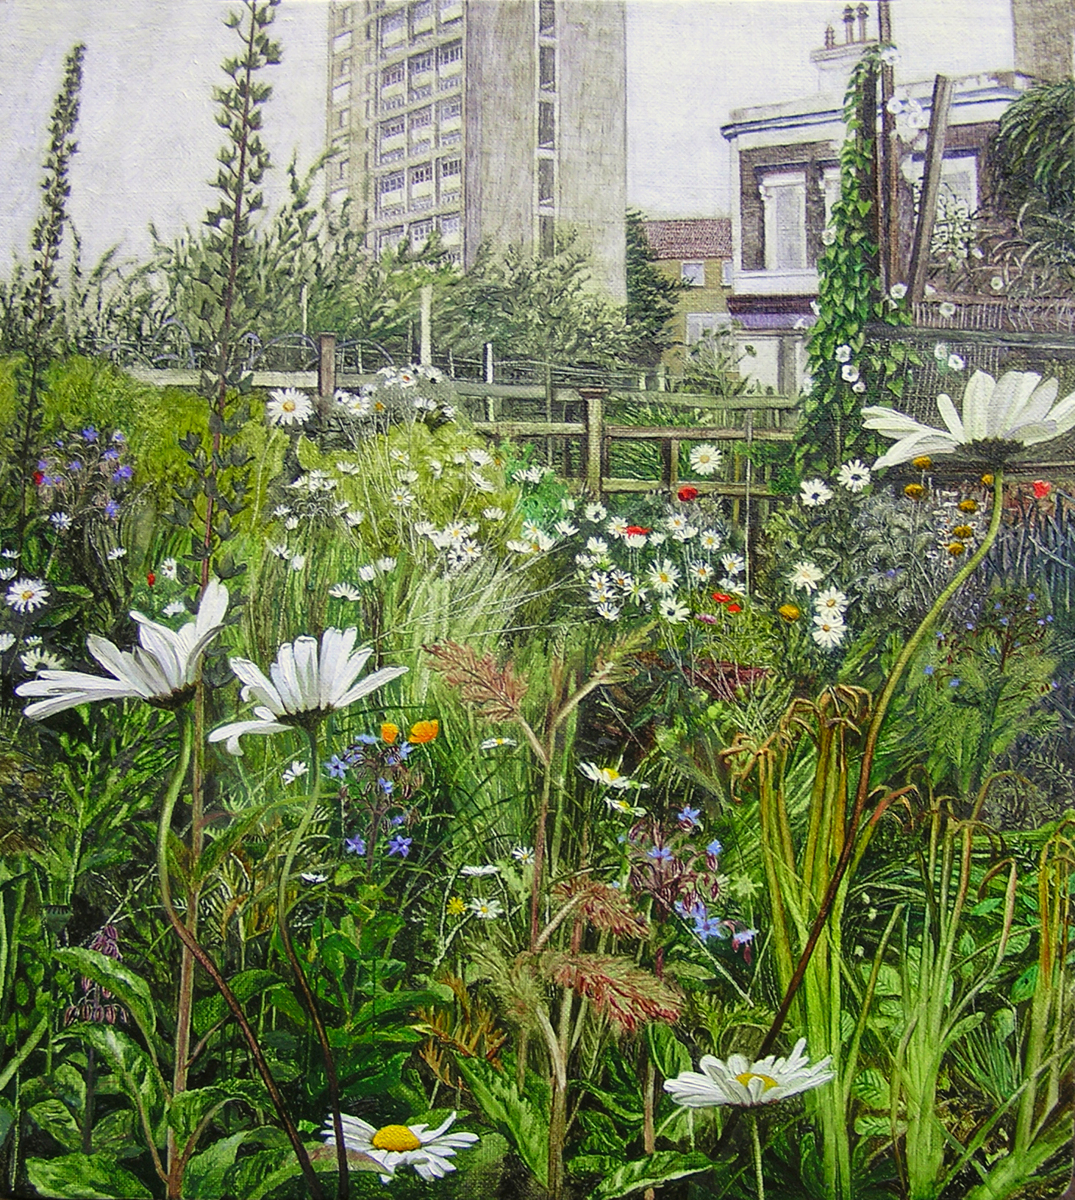 Meadow at Cable Street (2014) (large view)